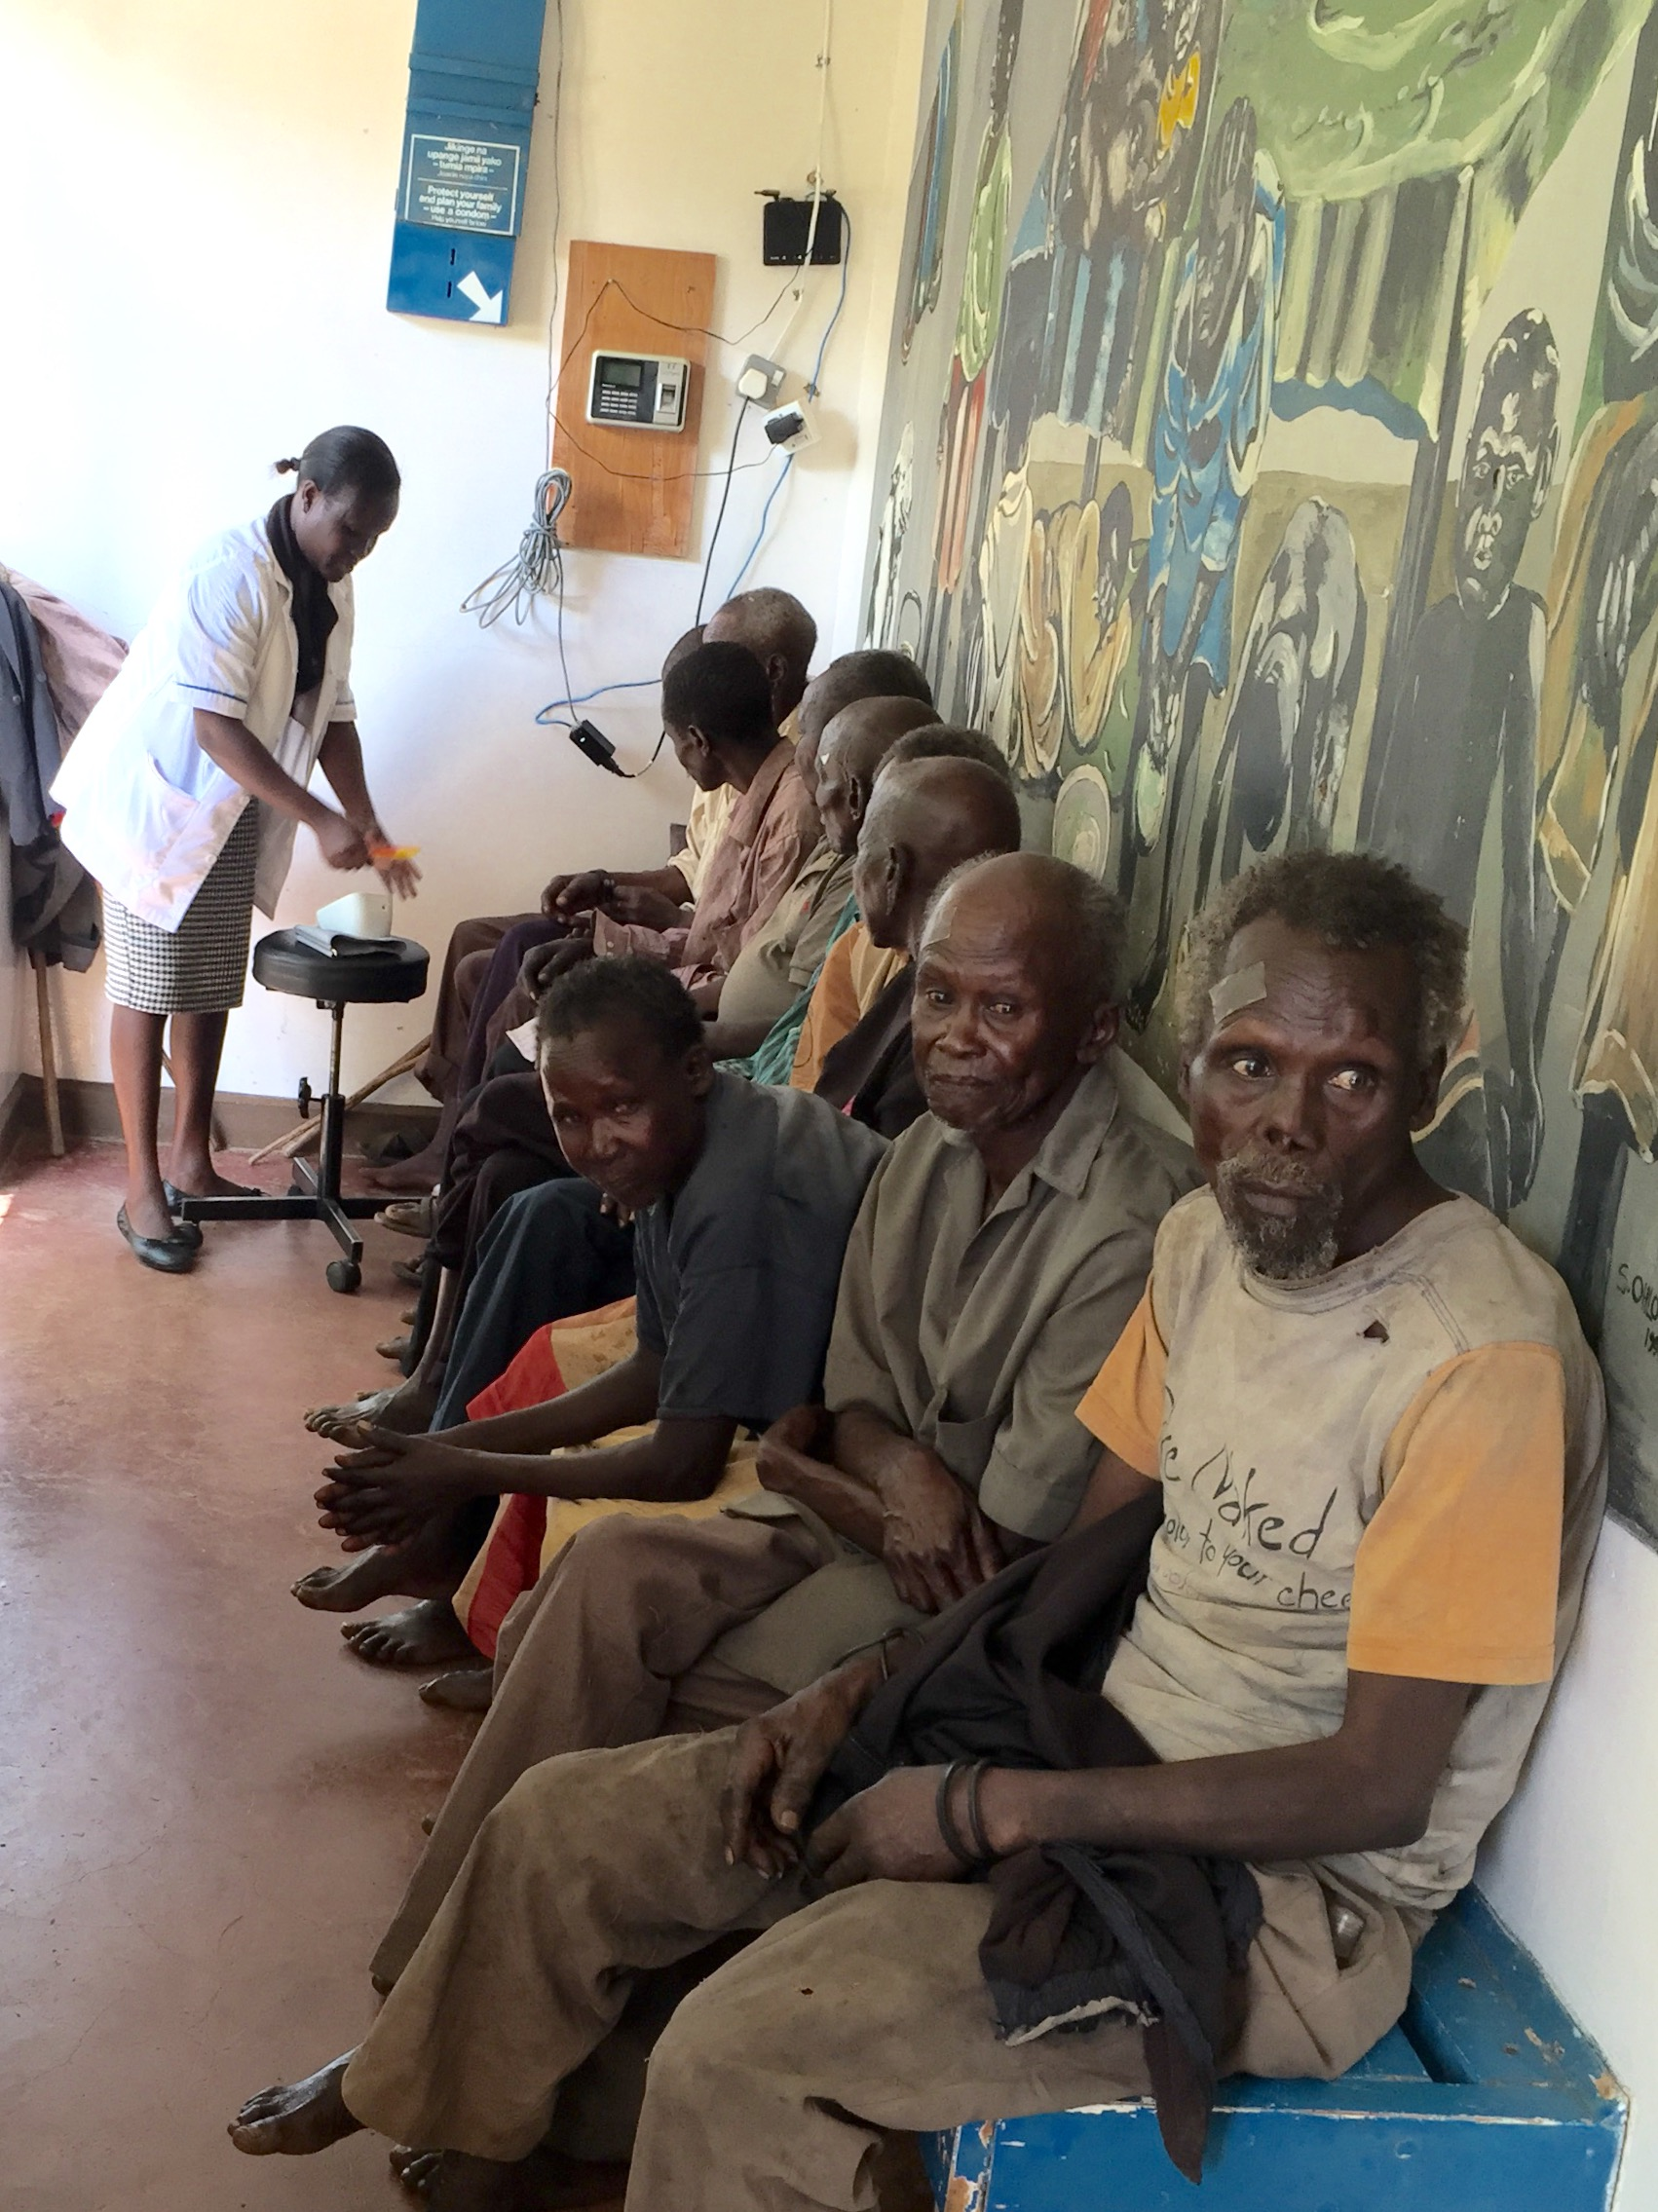 The cataract patients lined up waiting to be prepped for the procedure.